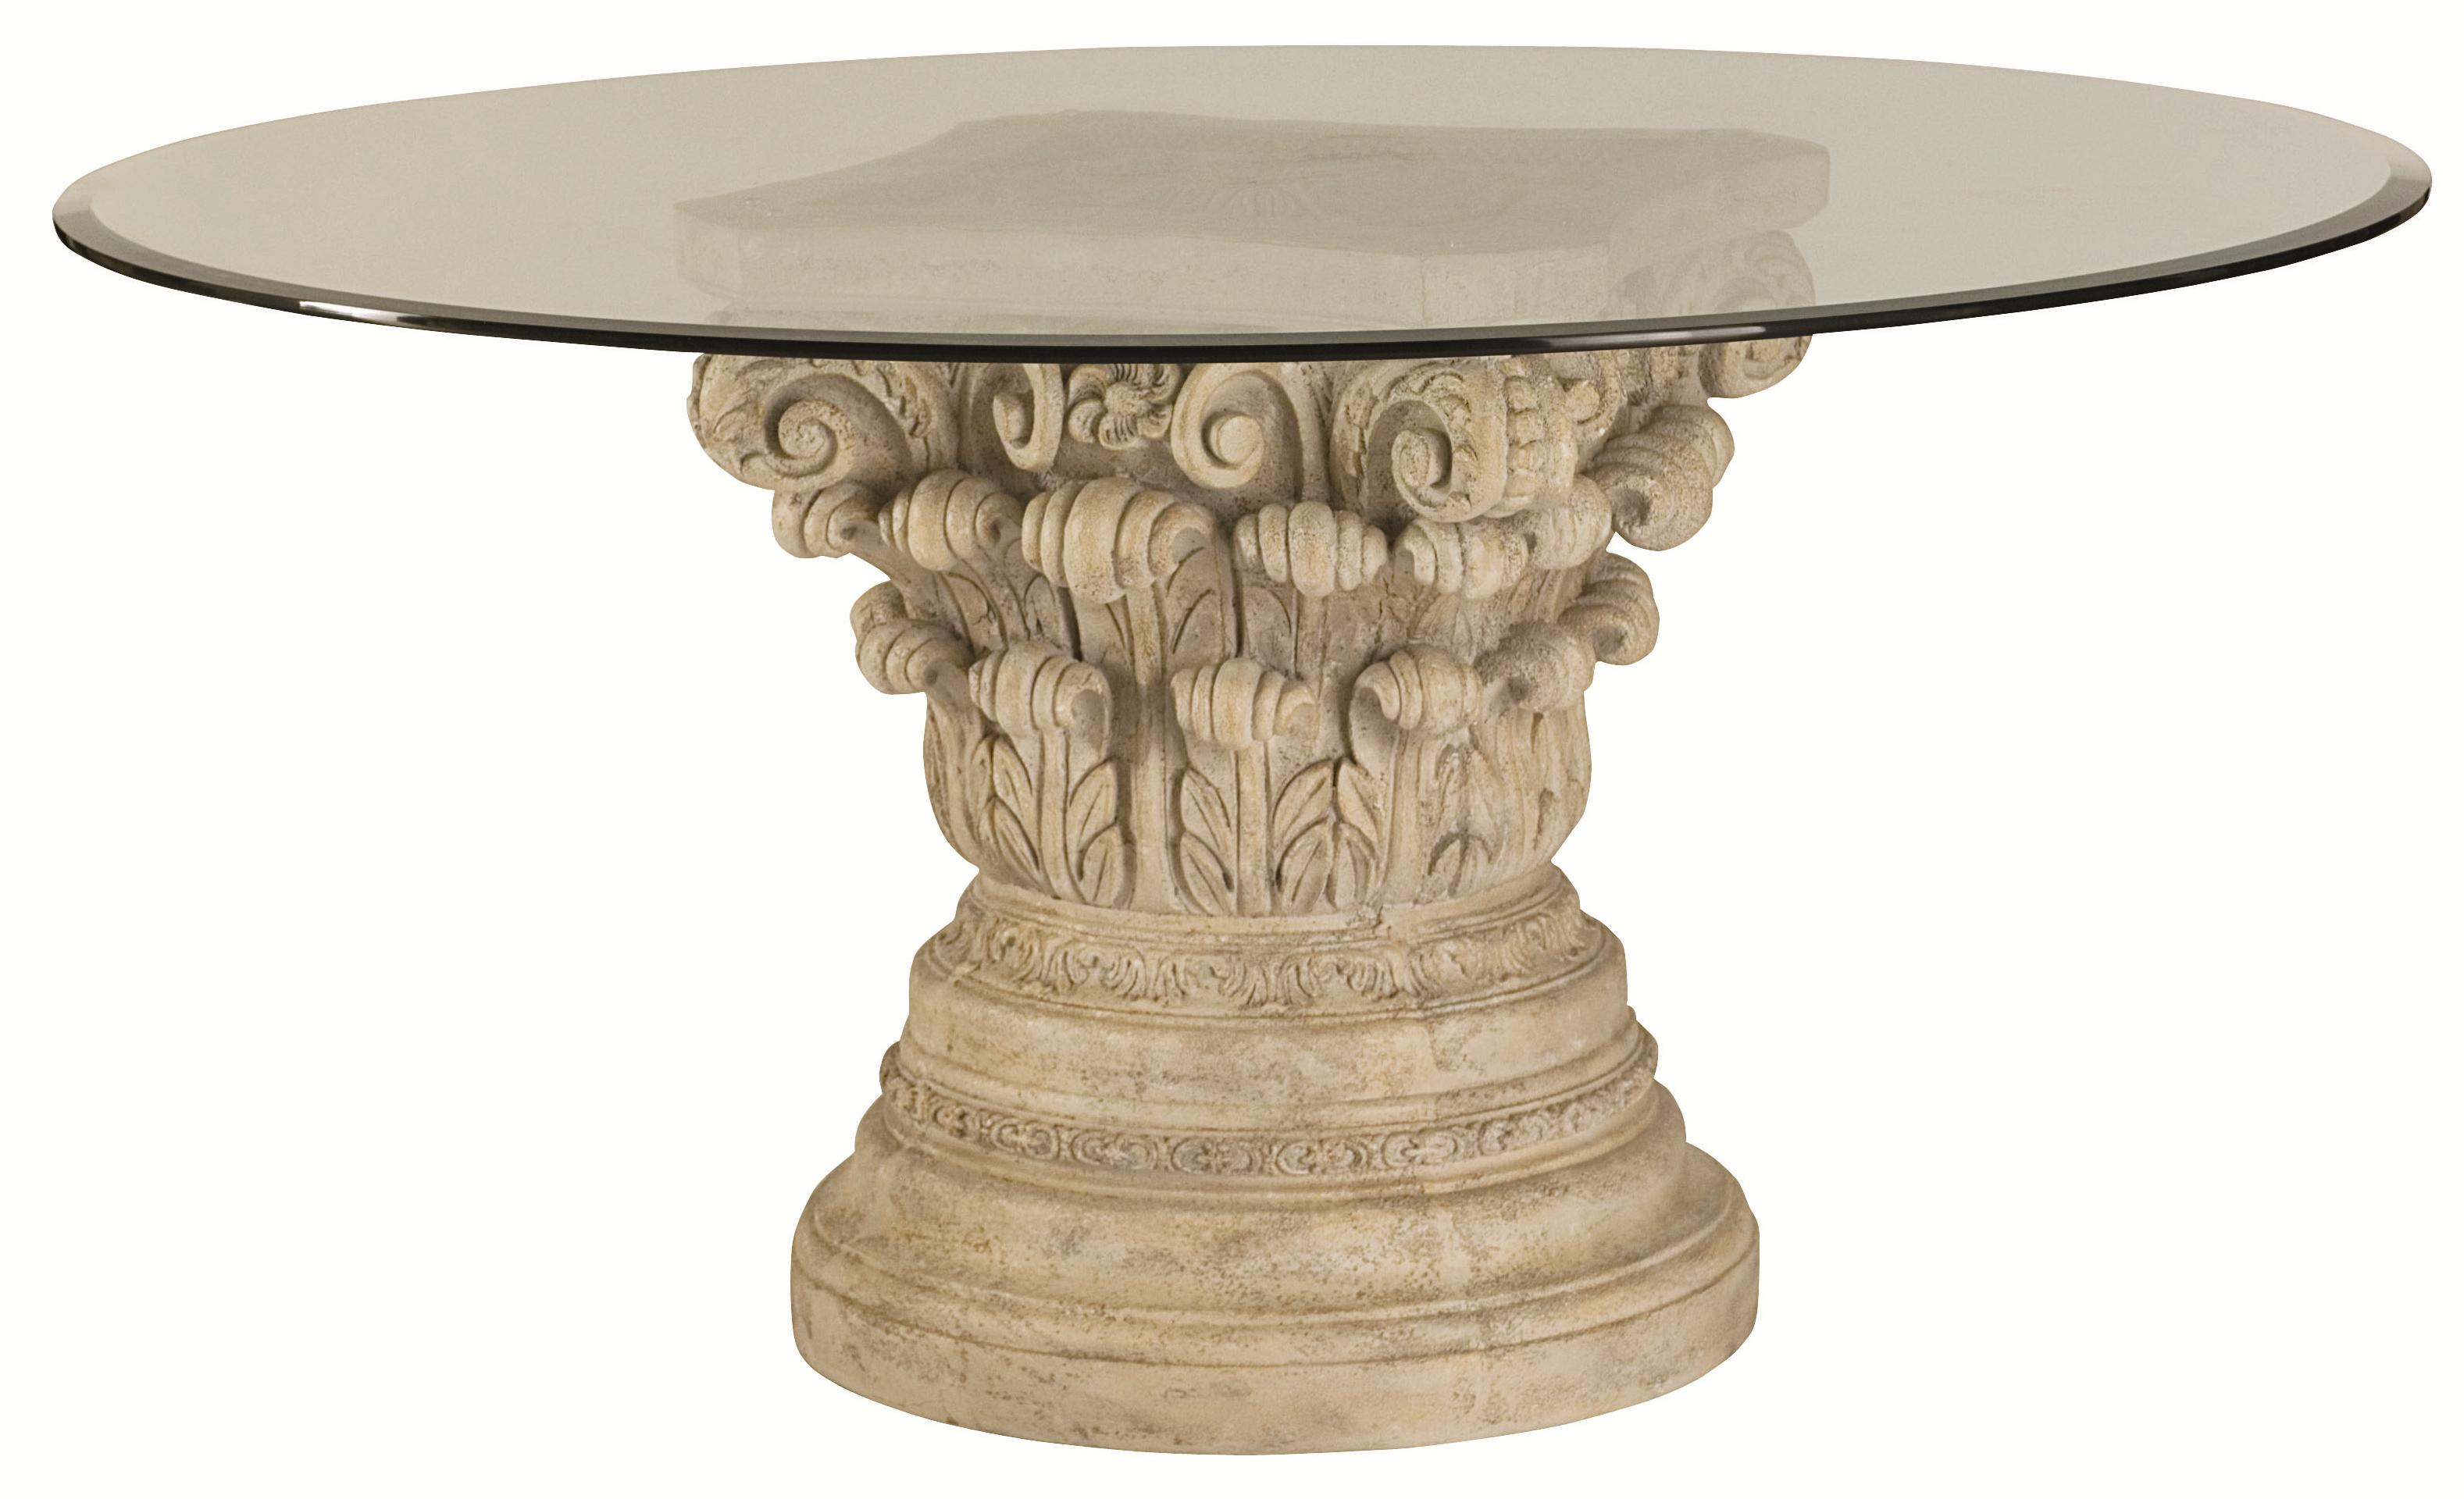 Beautiful Pedestal Table Base for Glass Top HomesFeed : Decorative White Rock Pedestal Table Base For Glass Top from homesfeed.com size 3155 x 1920 jpeg 327kB